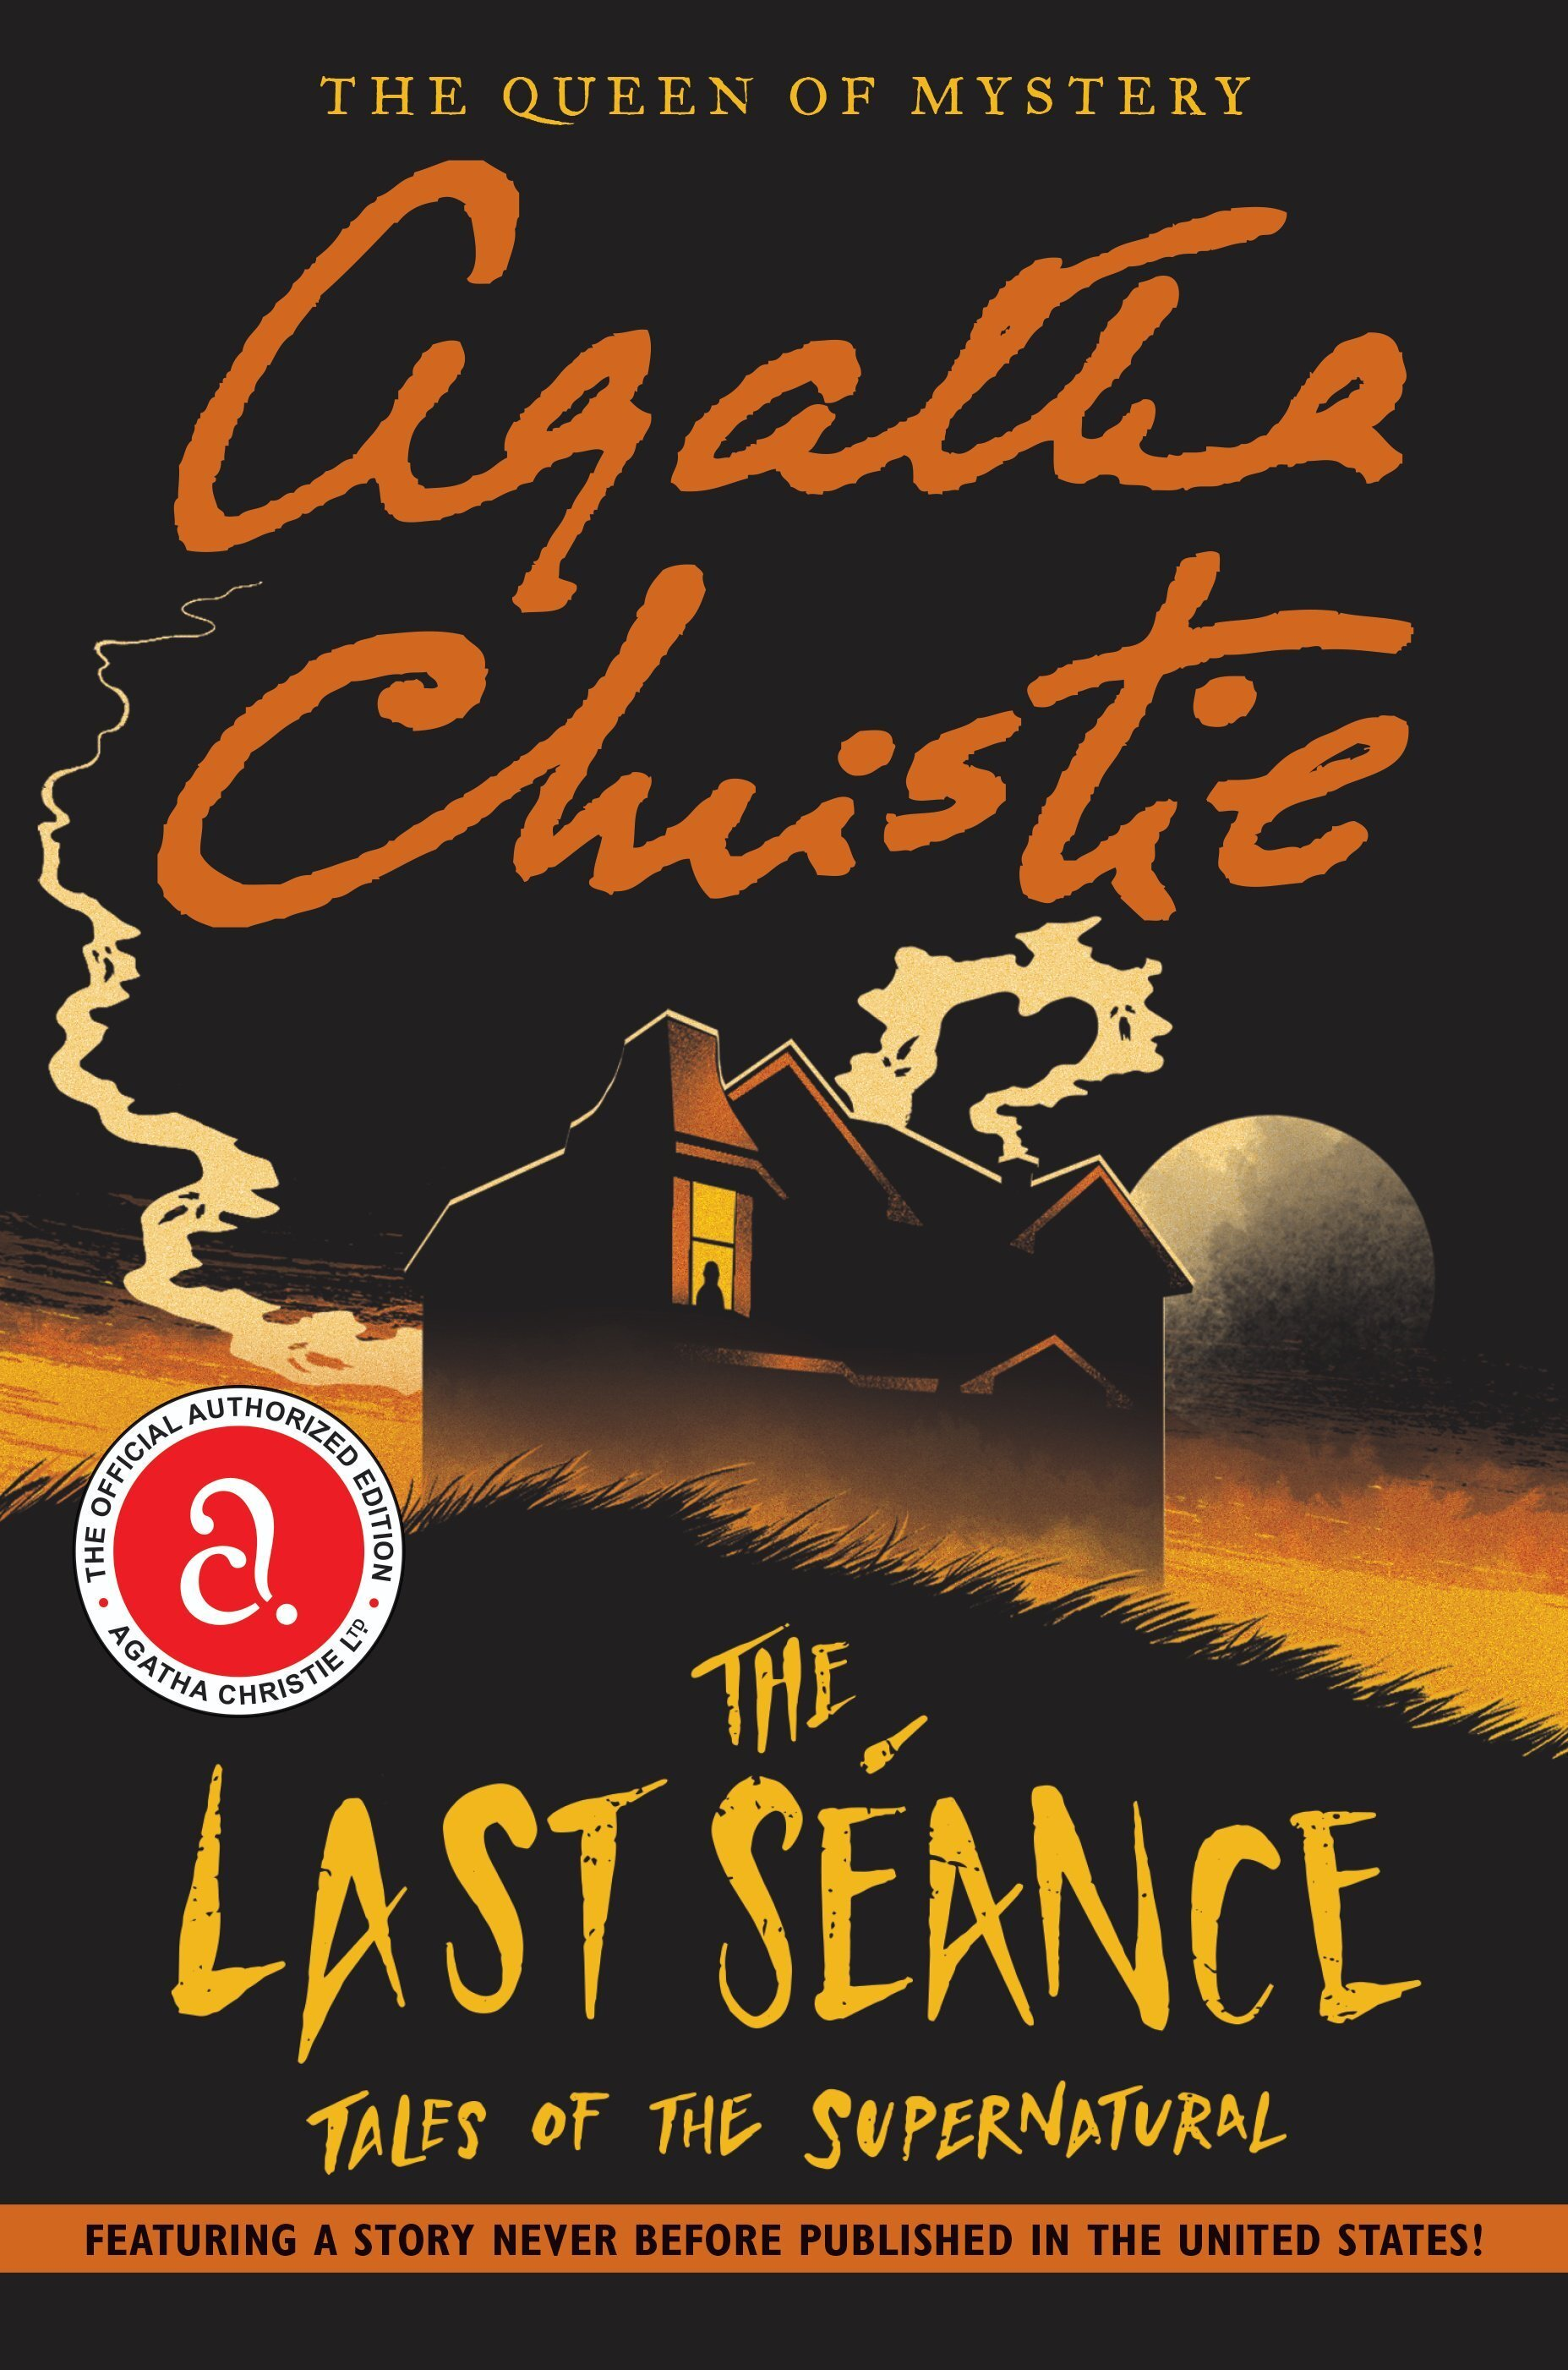 The Last Seance Agatha Christie.jpg